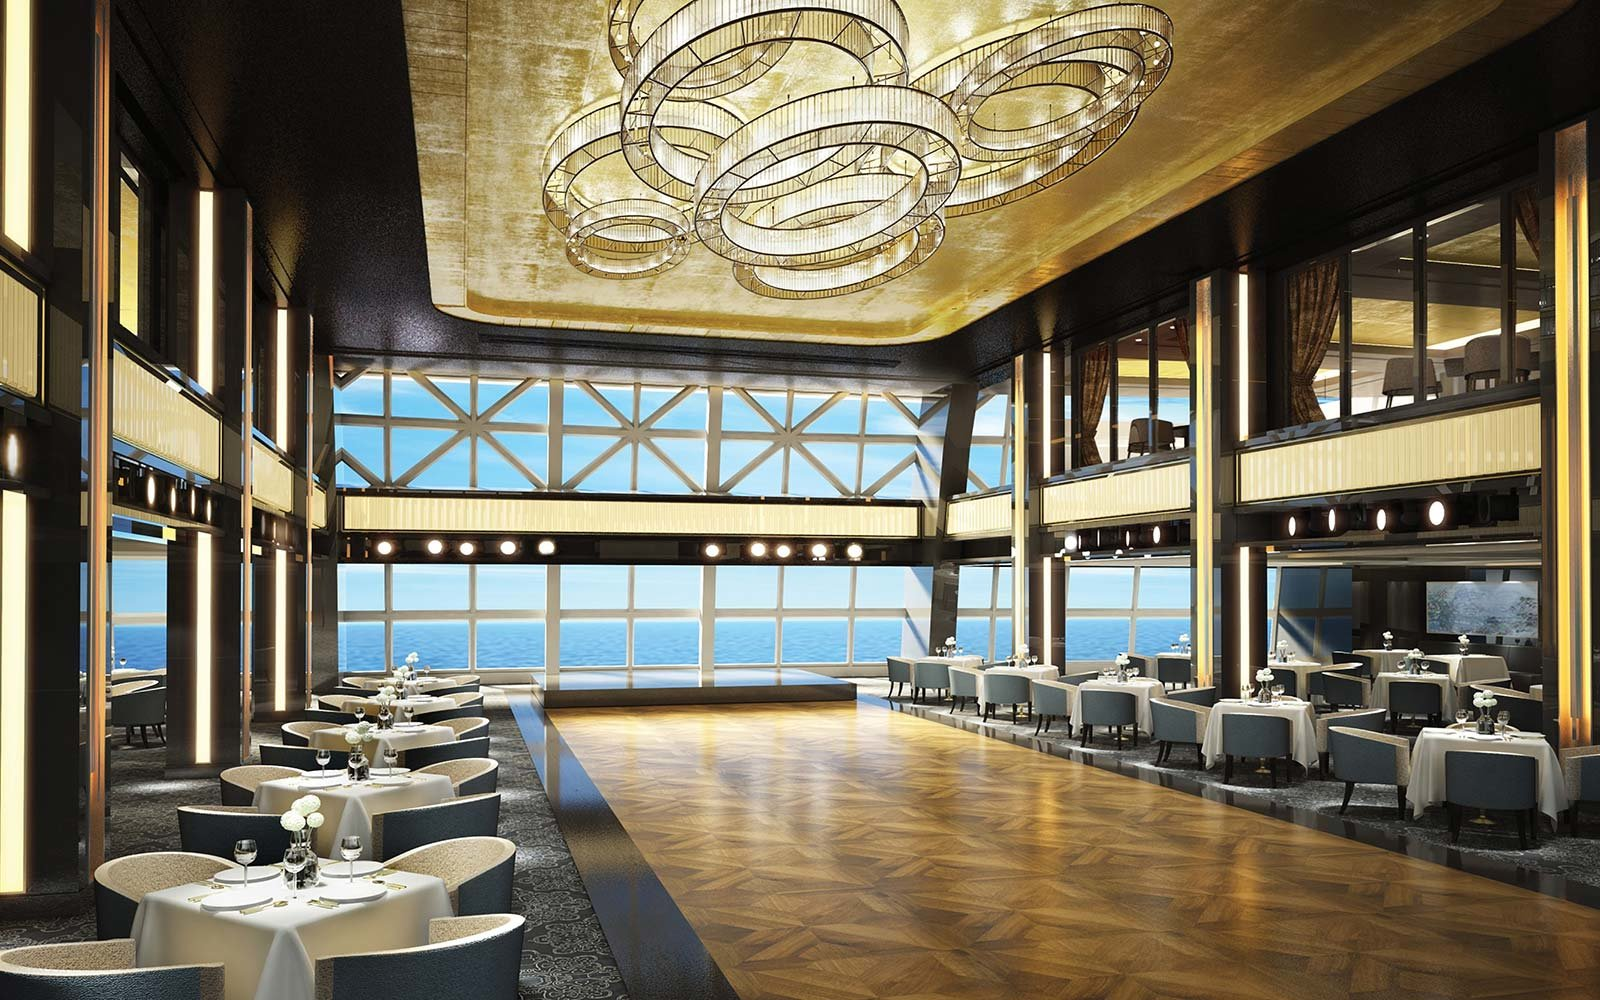 Norwegian Cruise Line Bliss Ship Dining Manhattan Room